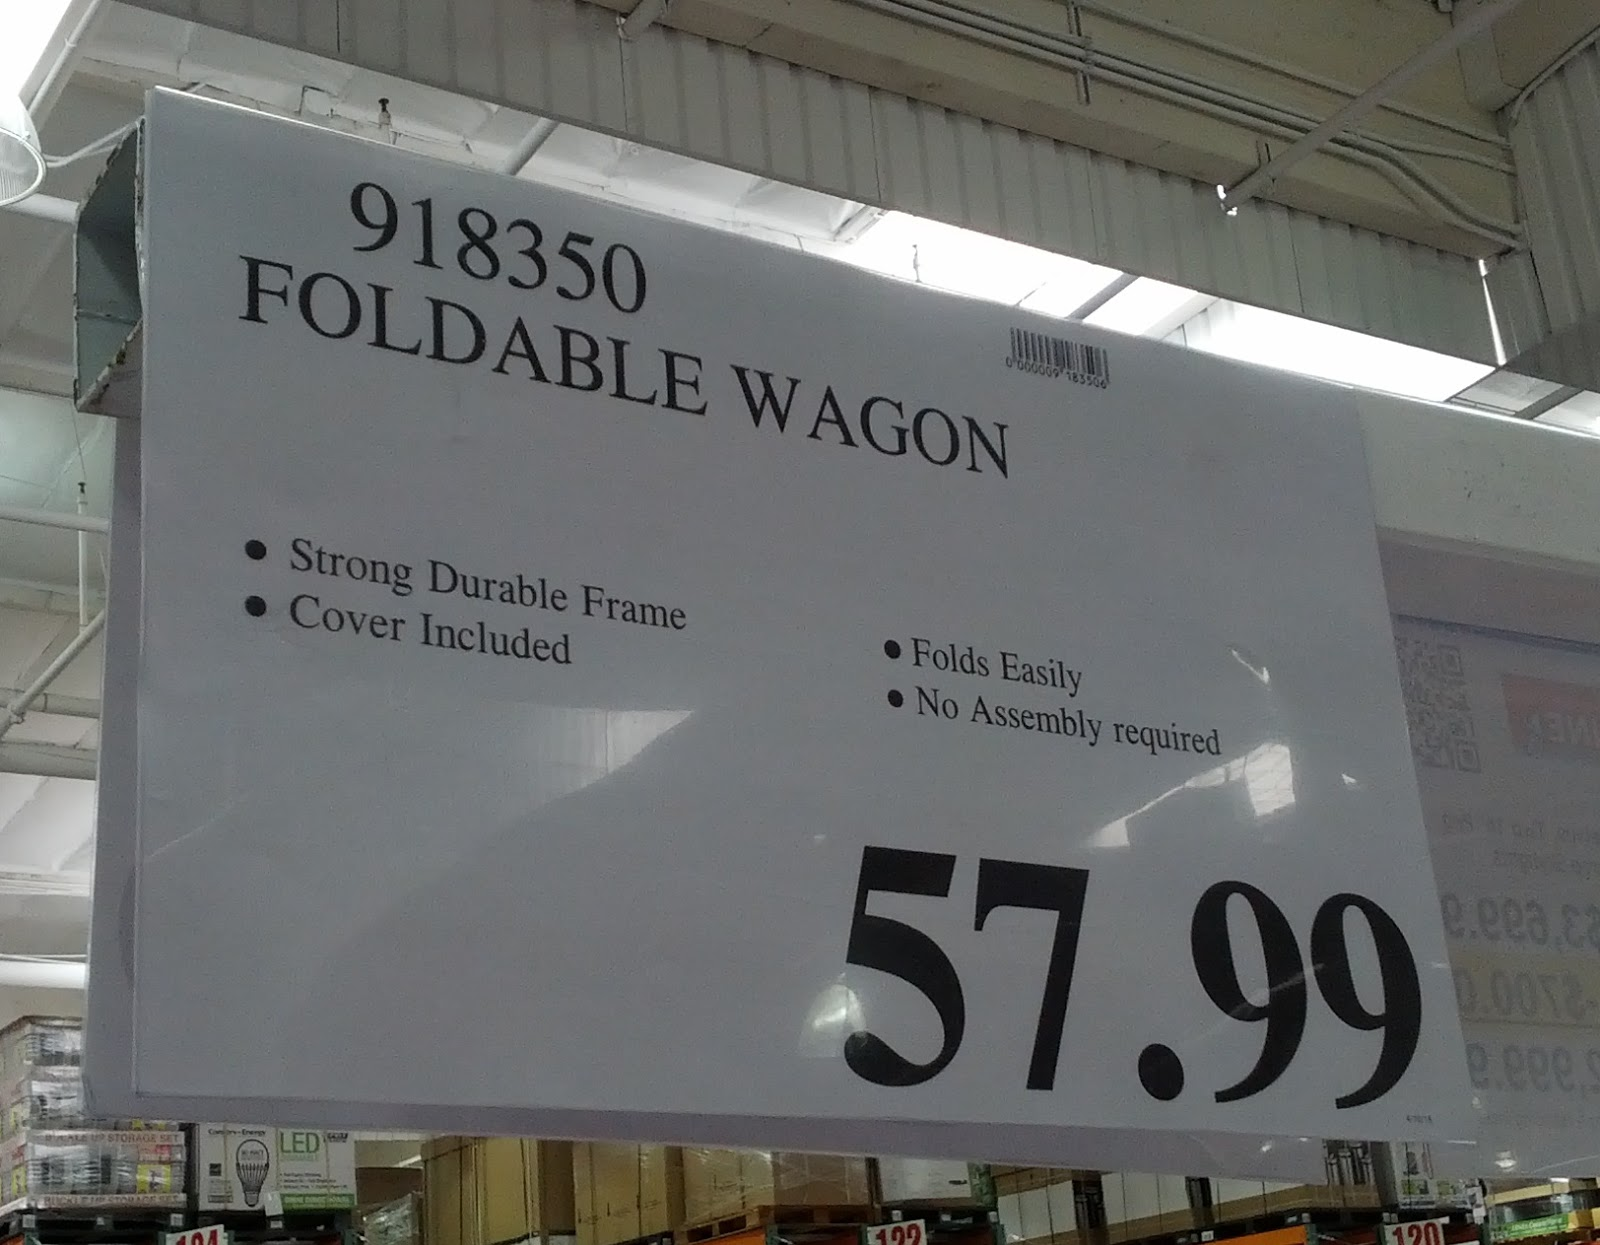 Deal for Foldable Wagon at Costco